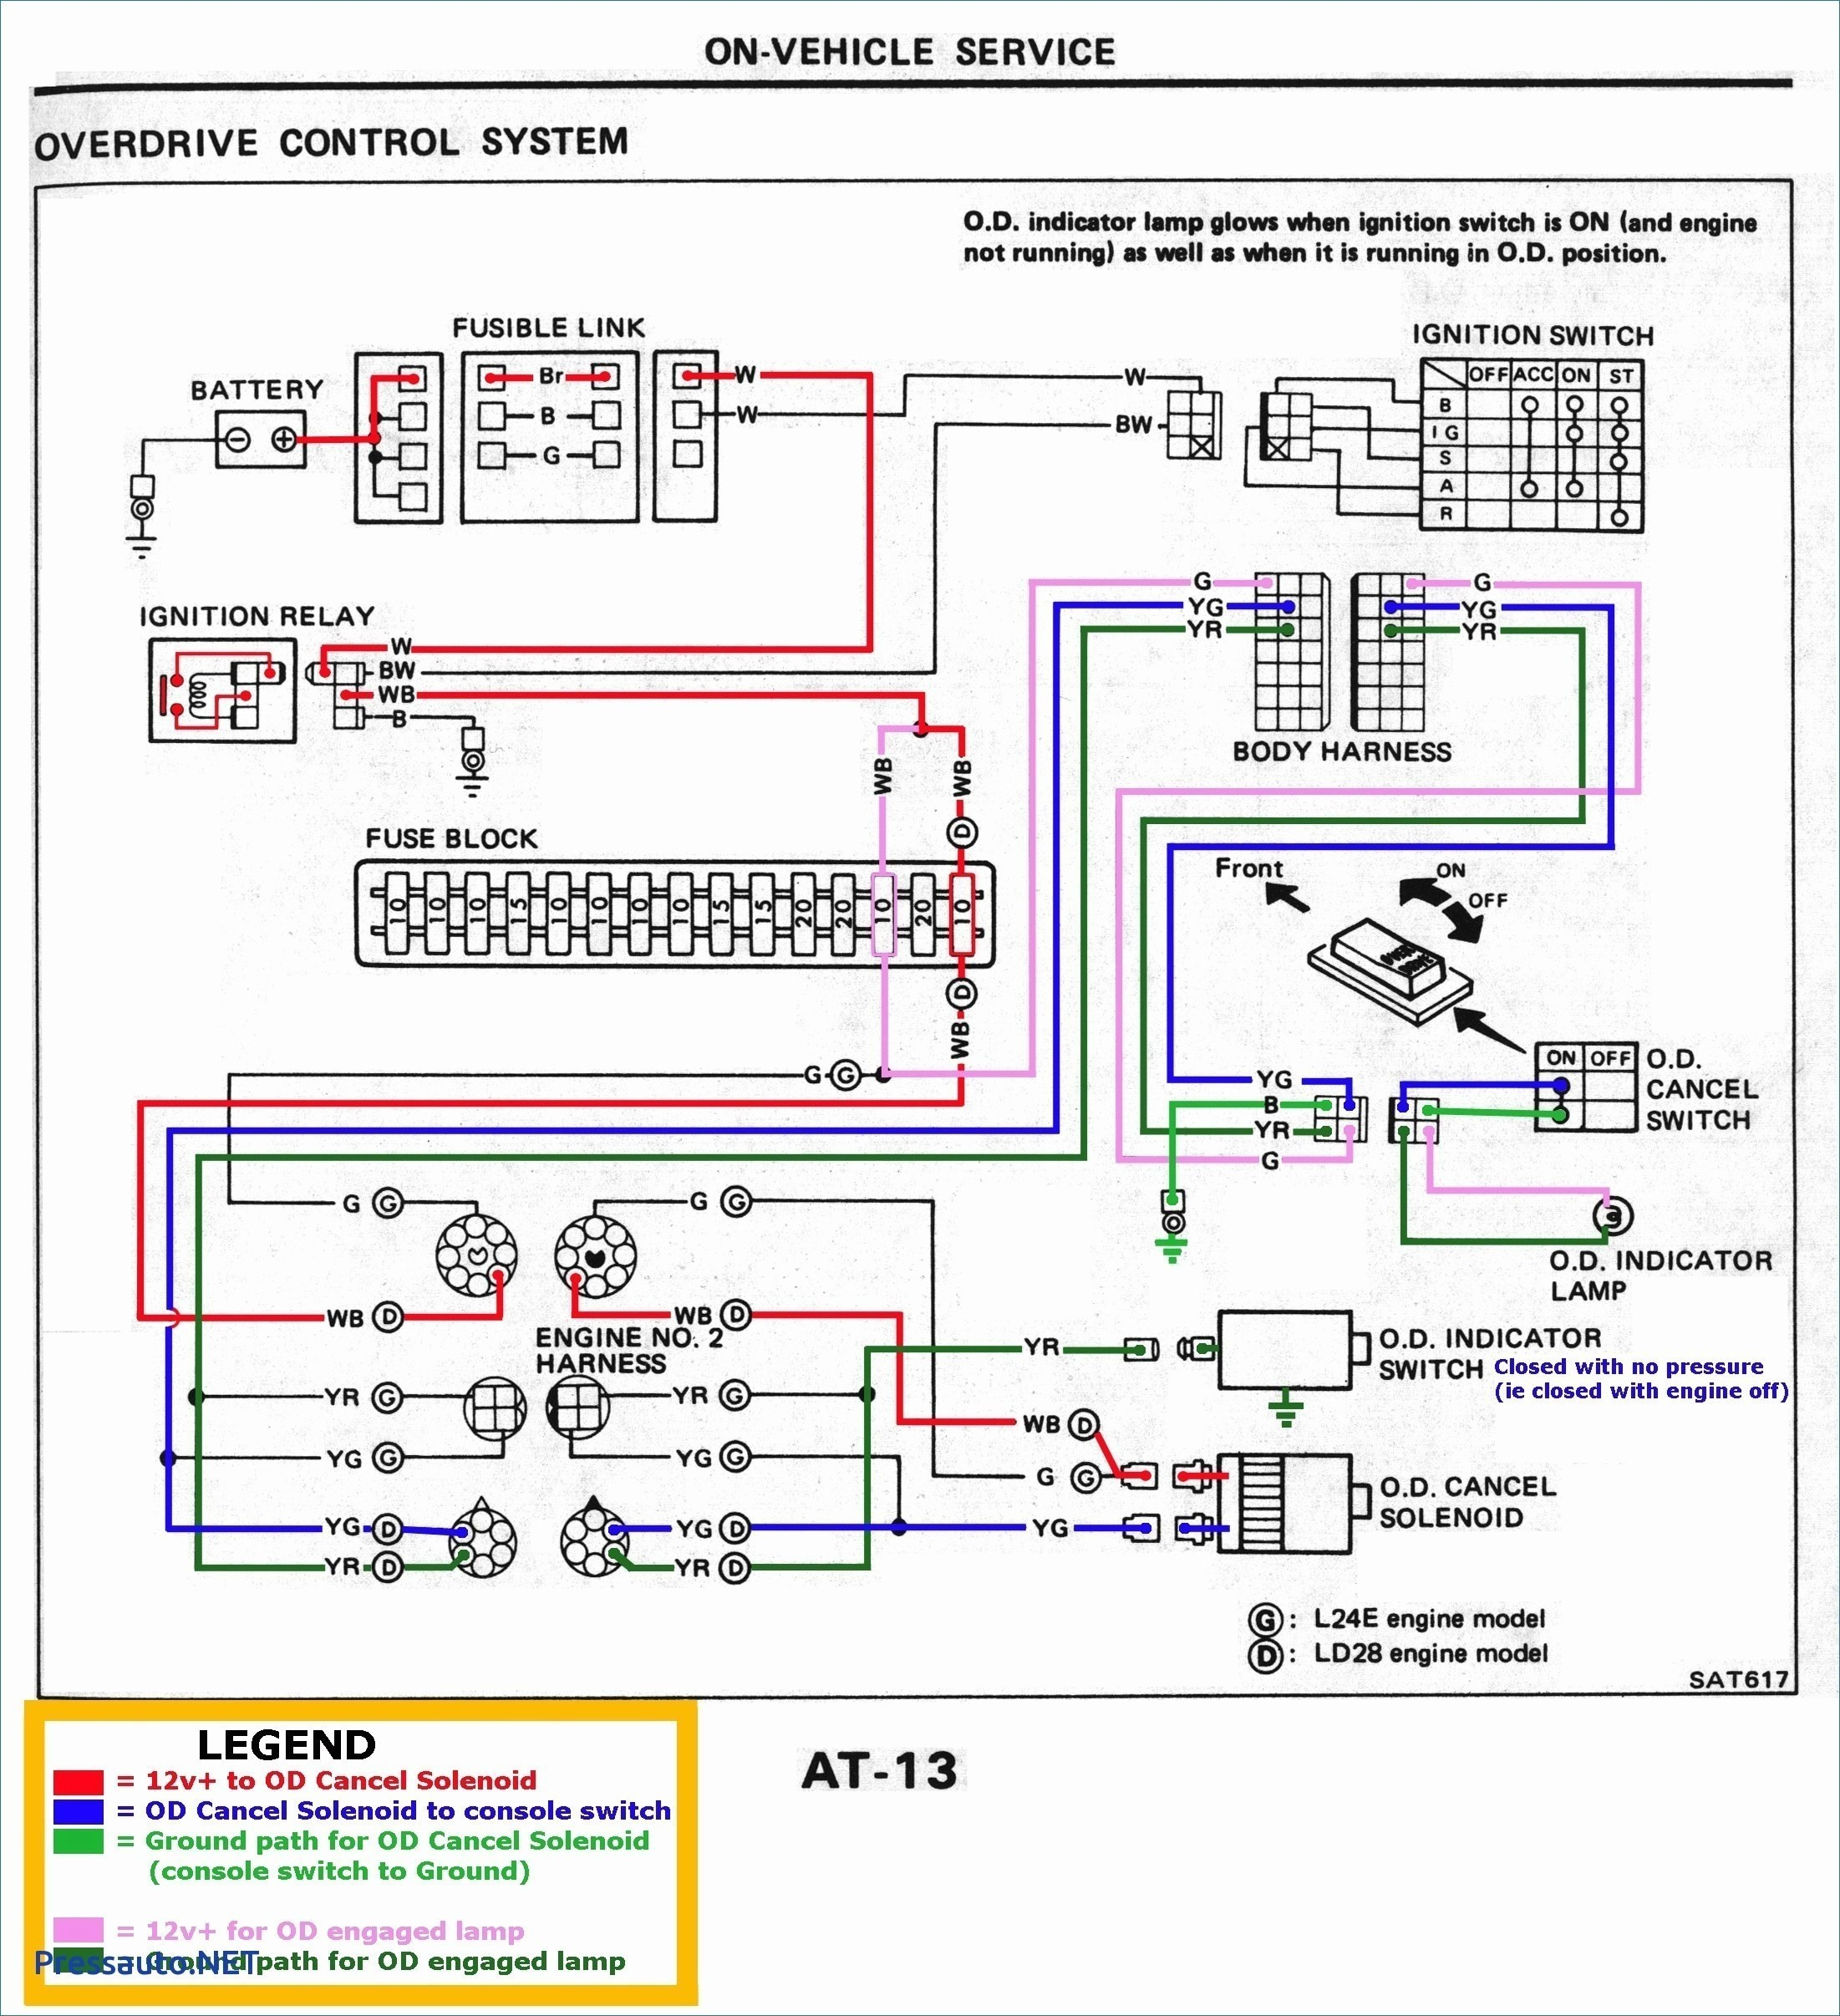 Coil Ignition System Diagram E36 Ignition Switch Wiring Diagram Best Wiring Diagram for Ignition Of Coil Ignition System Diagram Ignition System Troubleshooting Wiring Diagram Fresh S10 Ignition